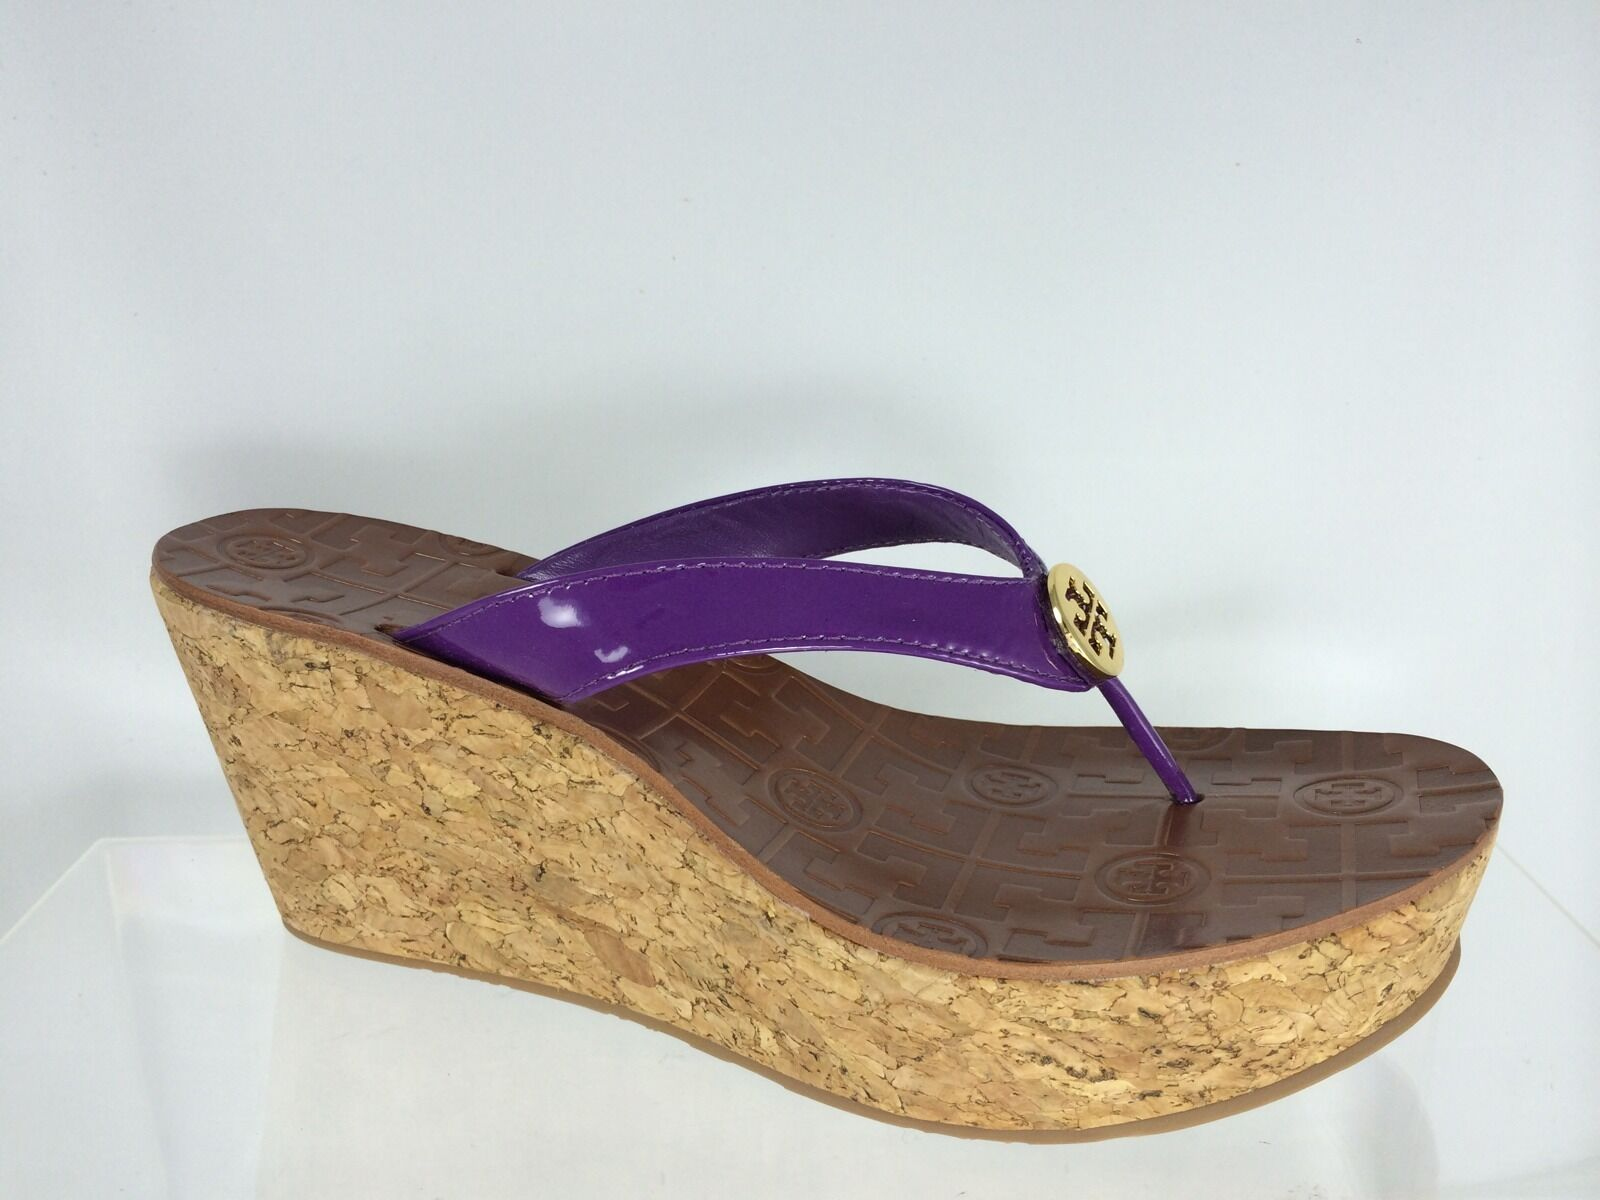 Tory Burch Wouomo viola Patent Leather Wedge With oro Logo scarpe 9.5